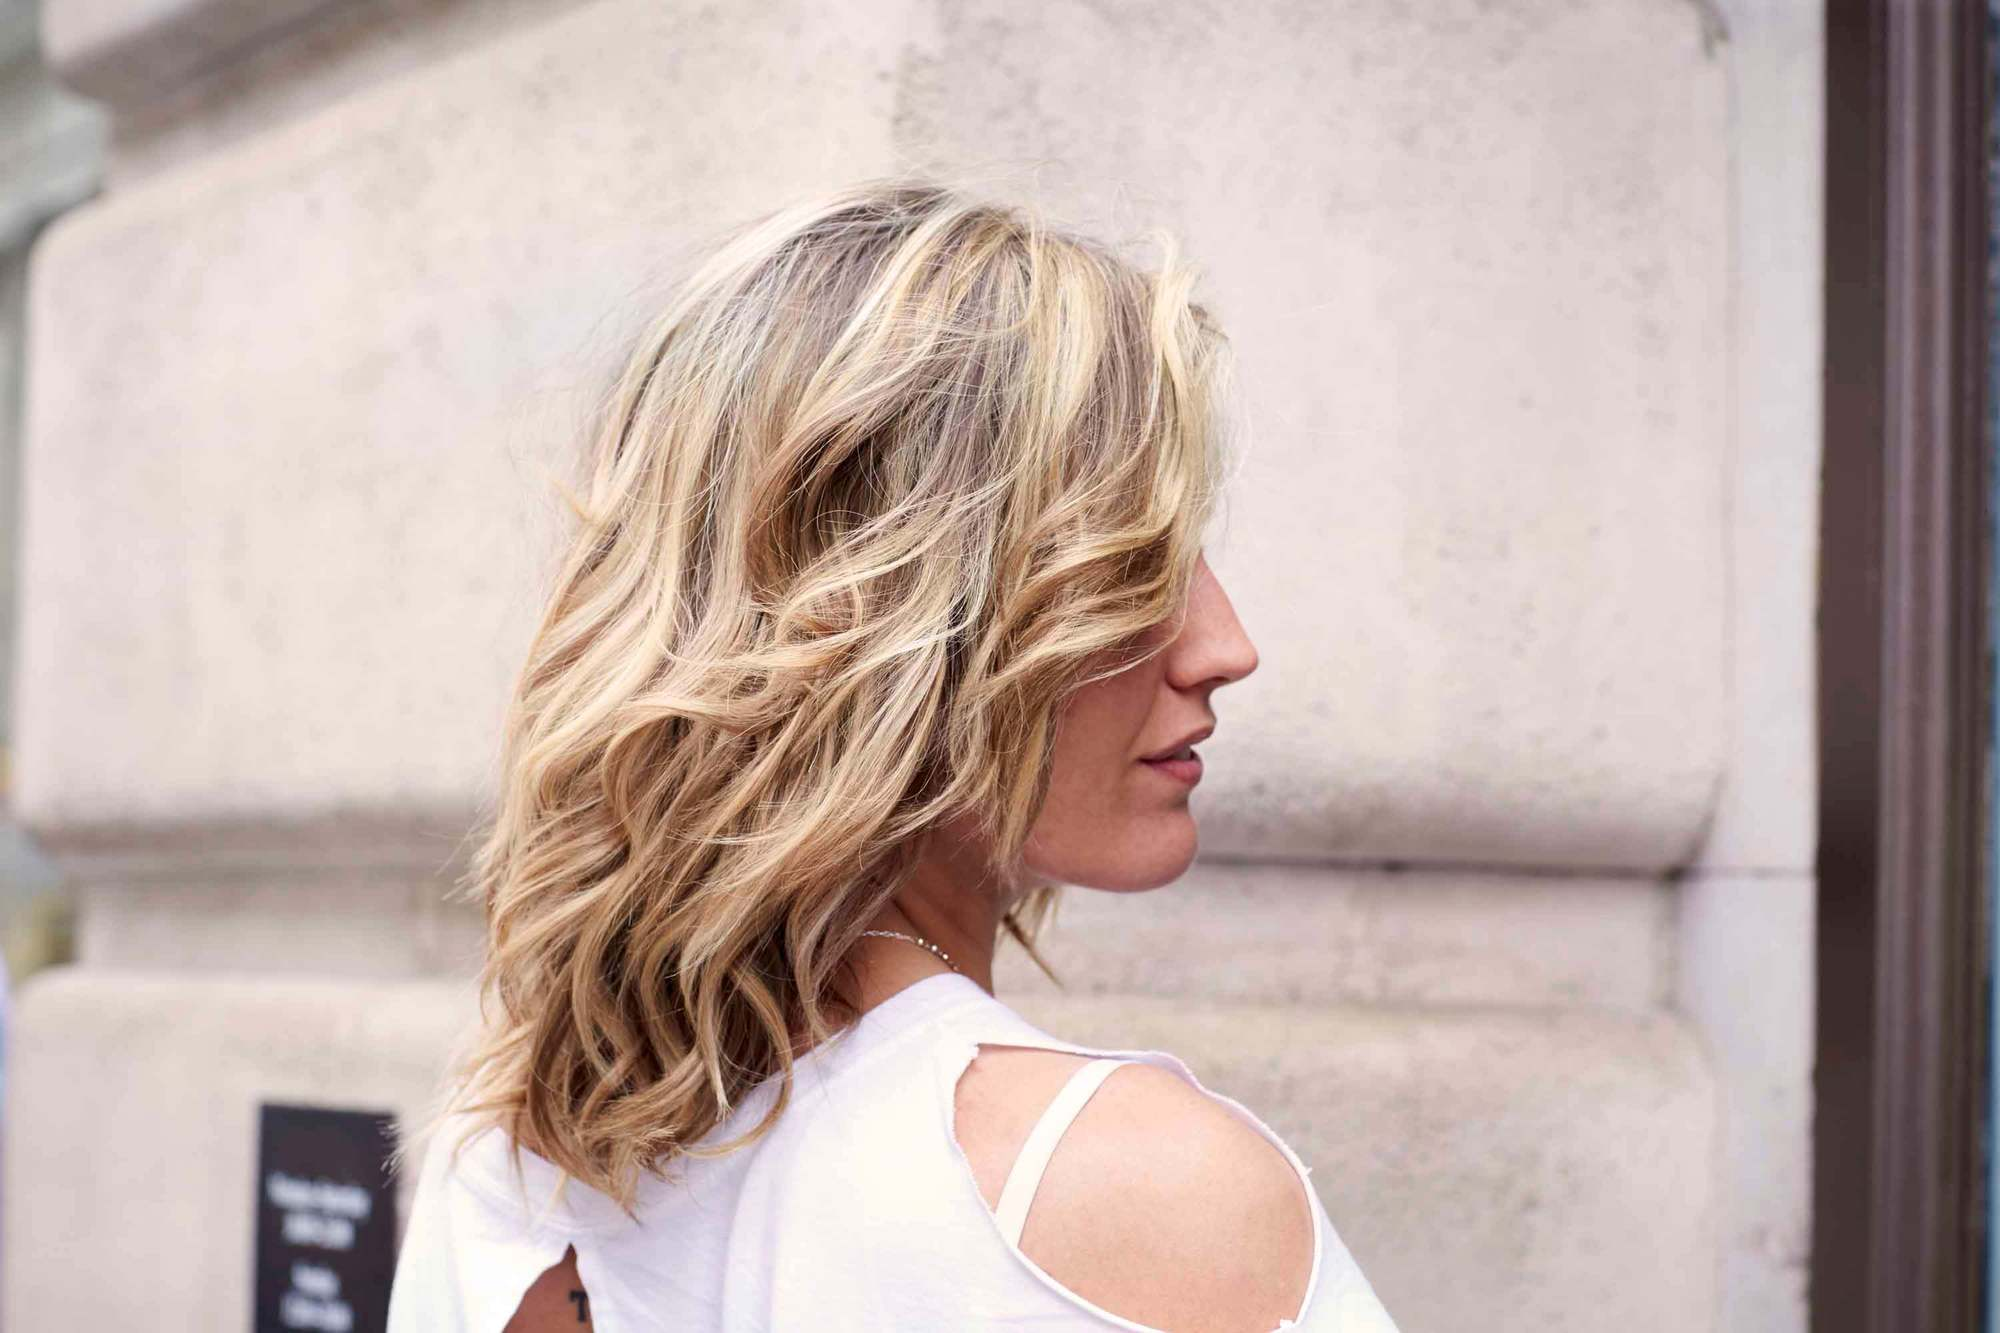 Wavy Hair Styling: Thick Wavy Hair: How To Style Your Hair In 5 Ways